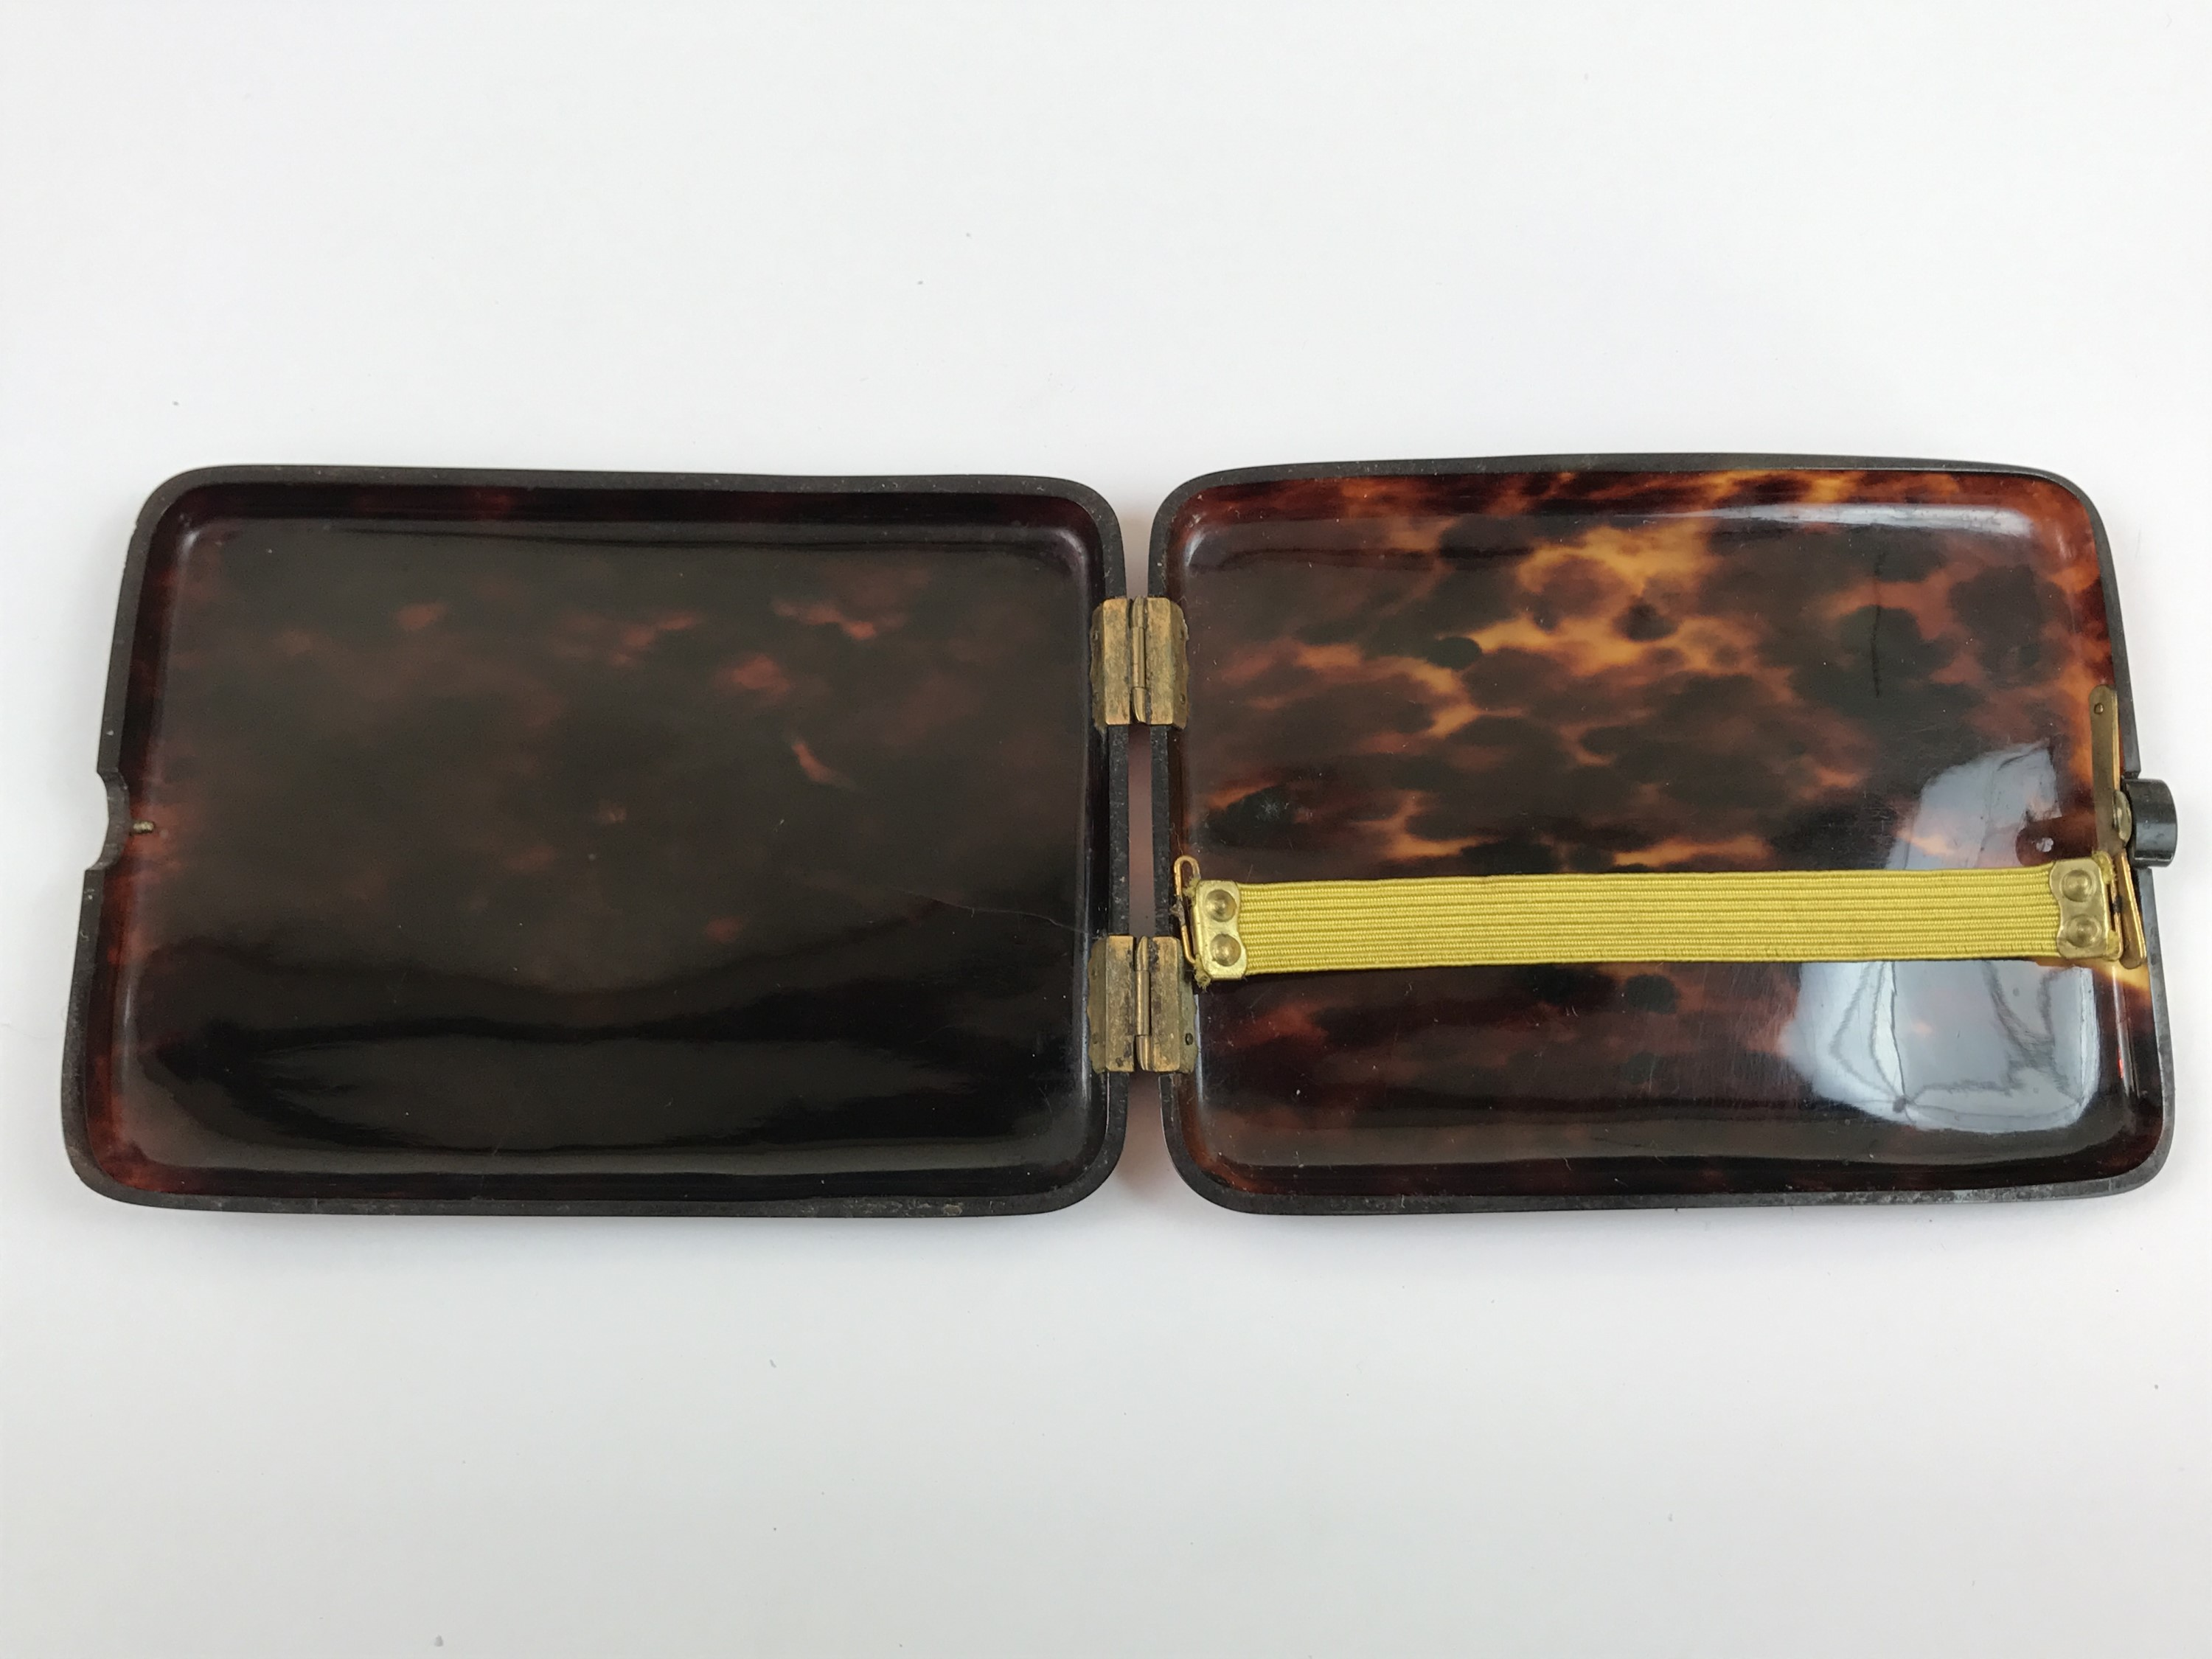 Lot 9 - A late 19th Century tortoiseshell cigarette case, with inset gilt metal monogram